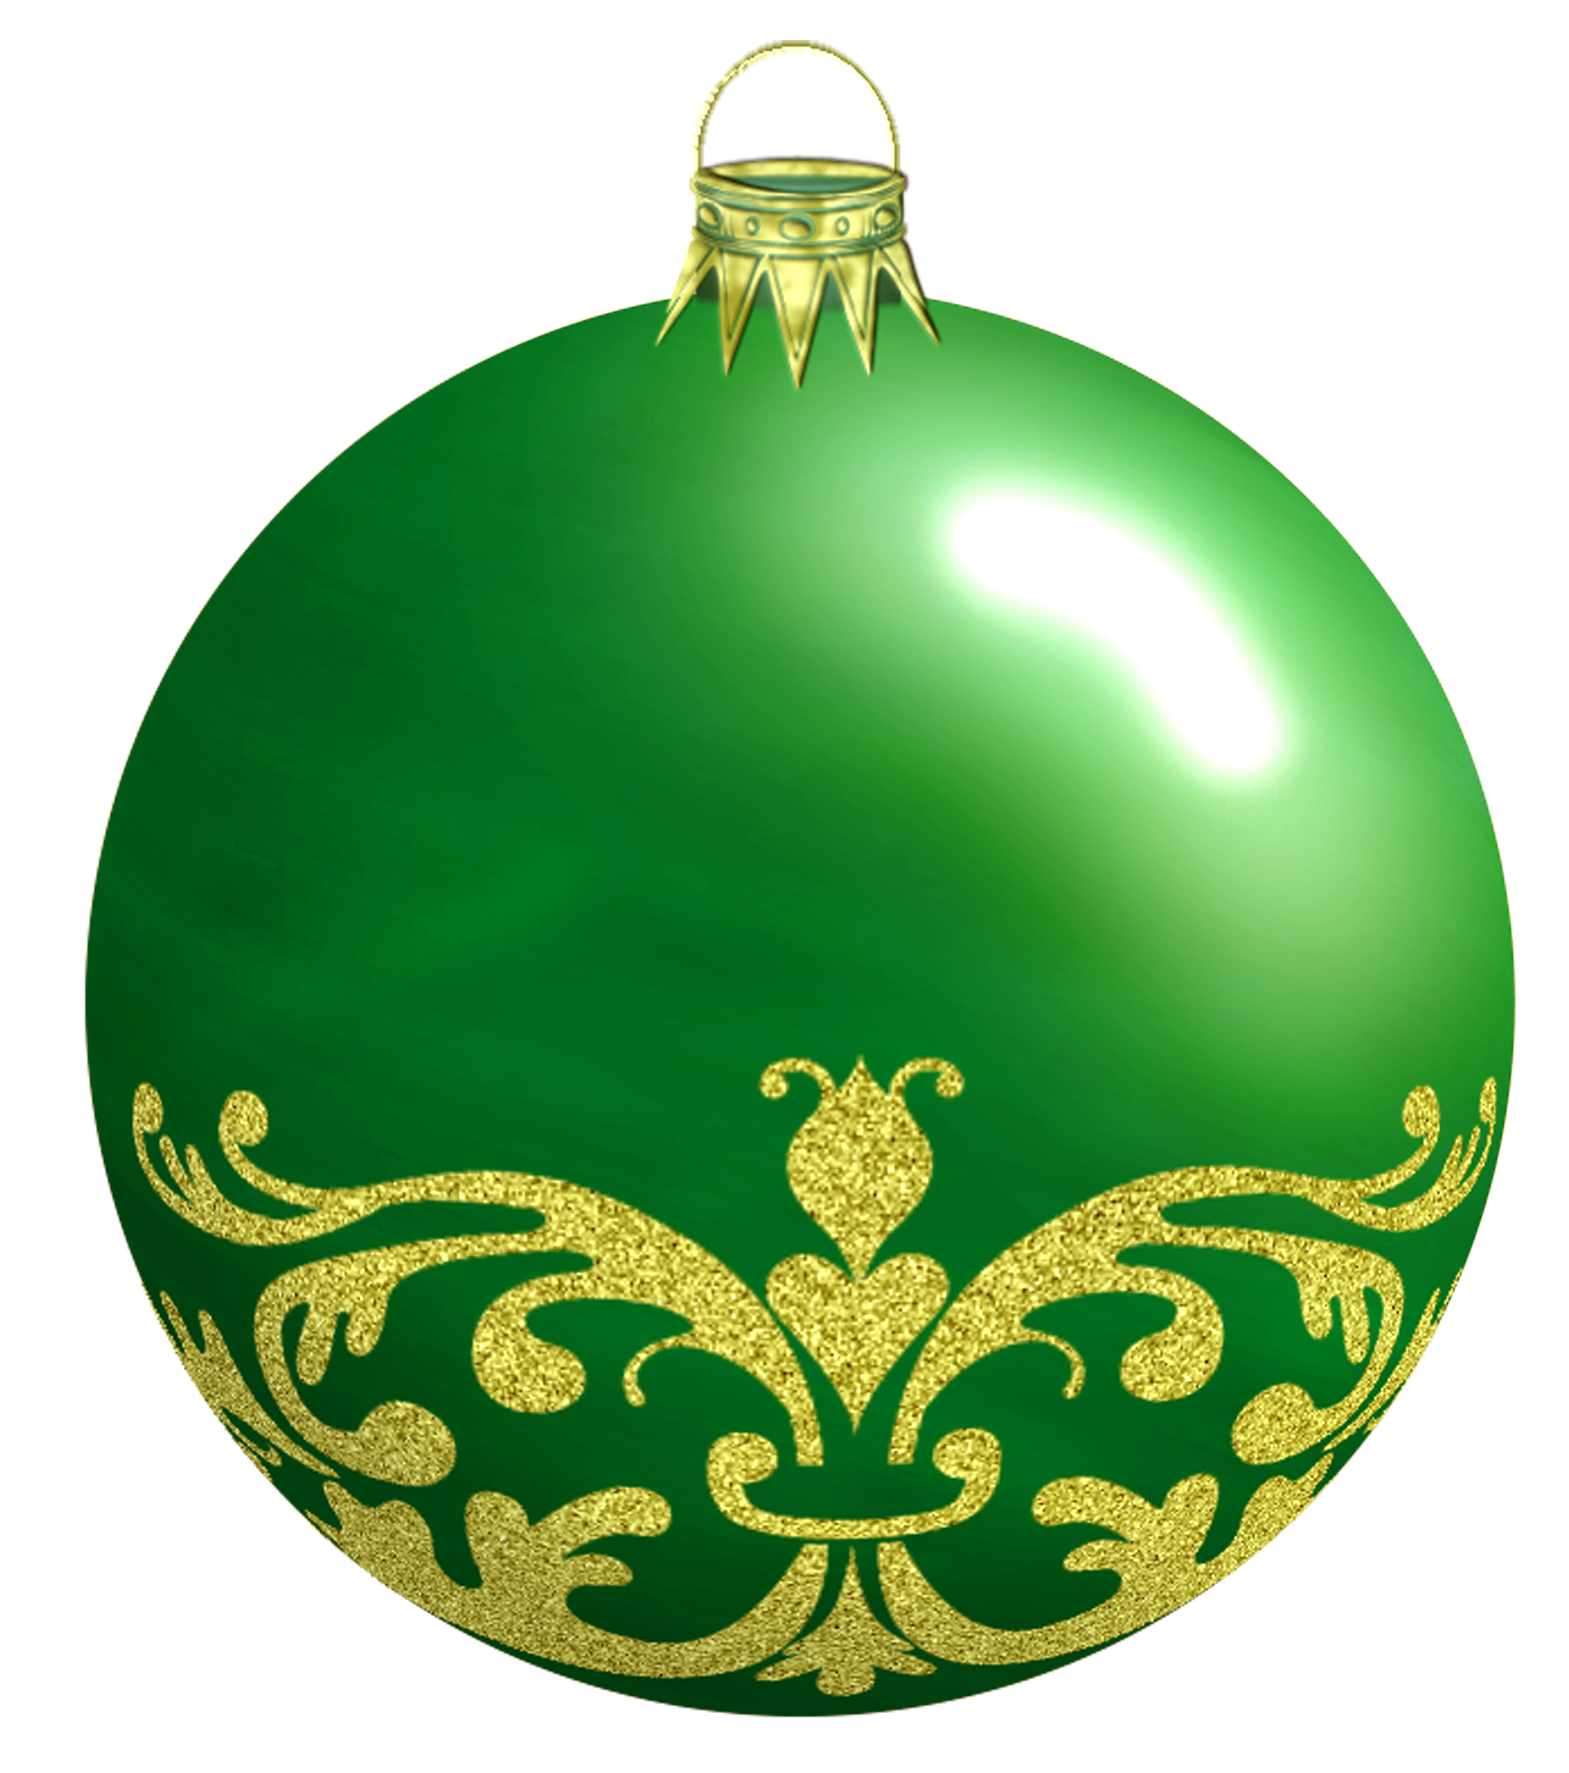 Christmas ornament png transparent. Bauble image purepng free